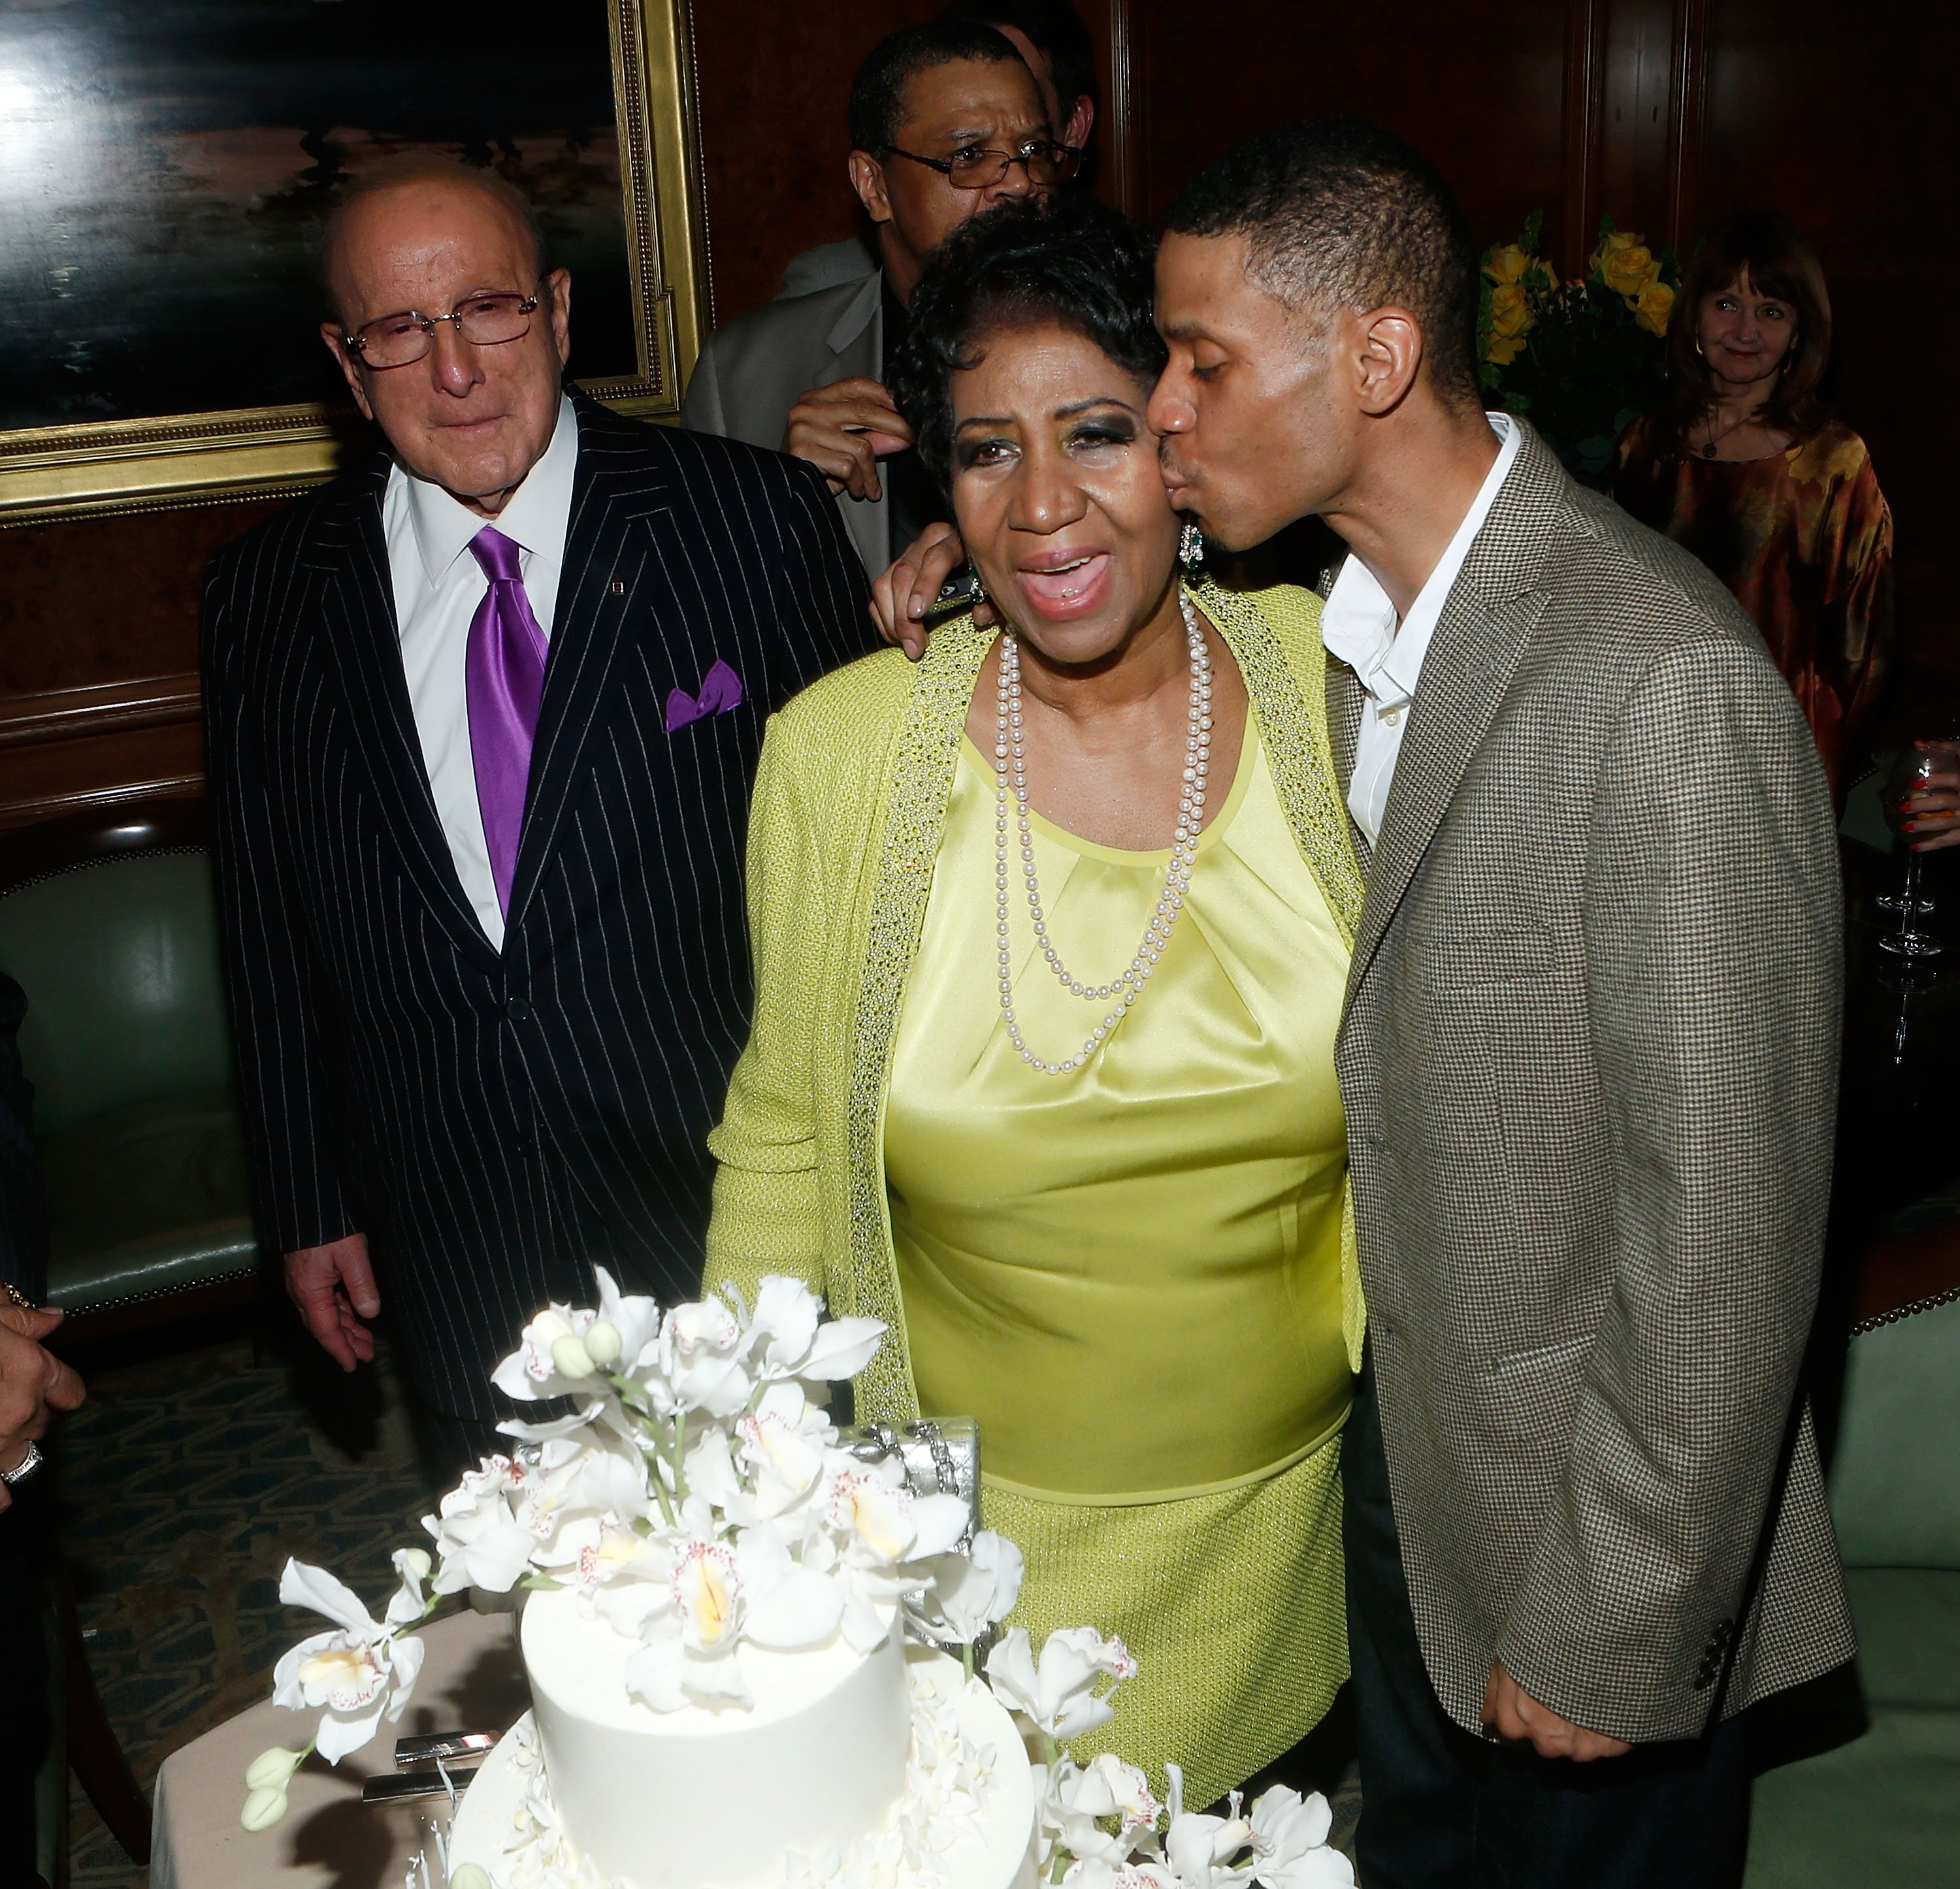 Clive Davis, Aretha Franklin and Kecalf Cunningham at Aretha Franklin's 72nd Birthday Celebration on March 22, 2014 in New York City | Photo: Getty Images